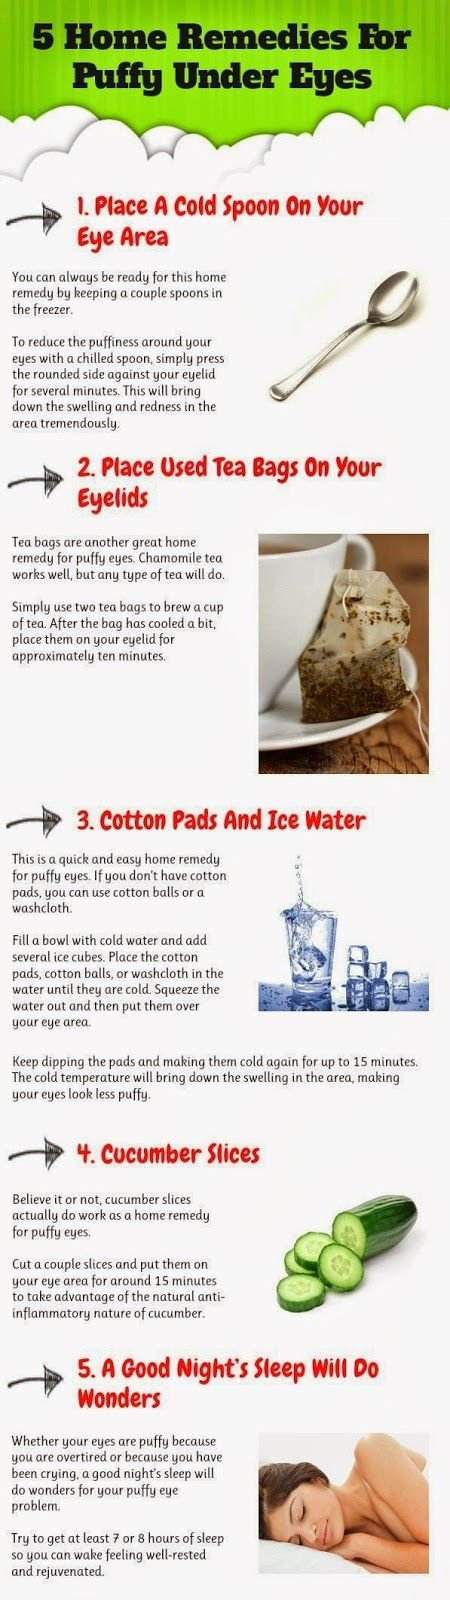 Natural Herbs For Puffy Eyes